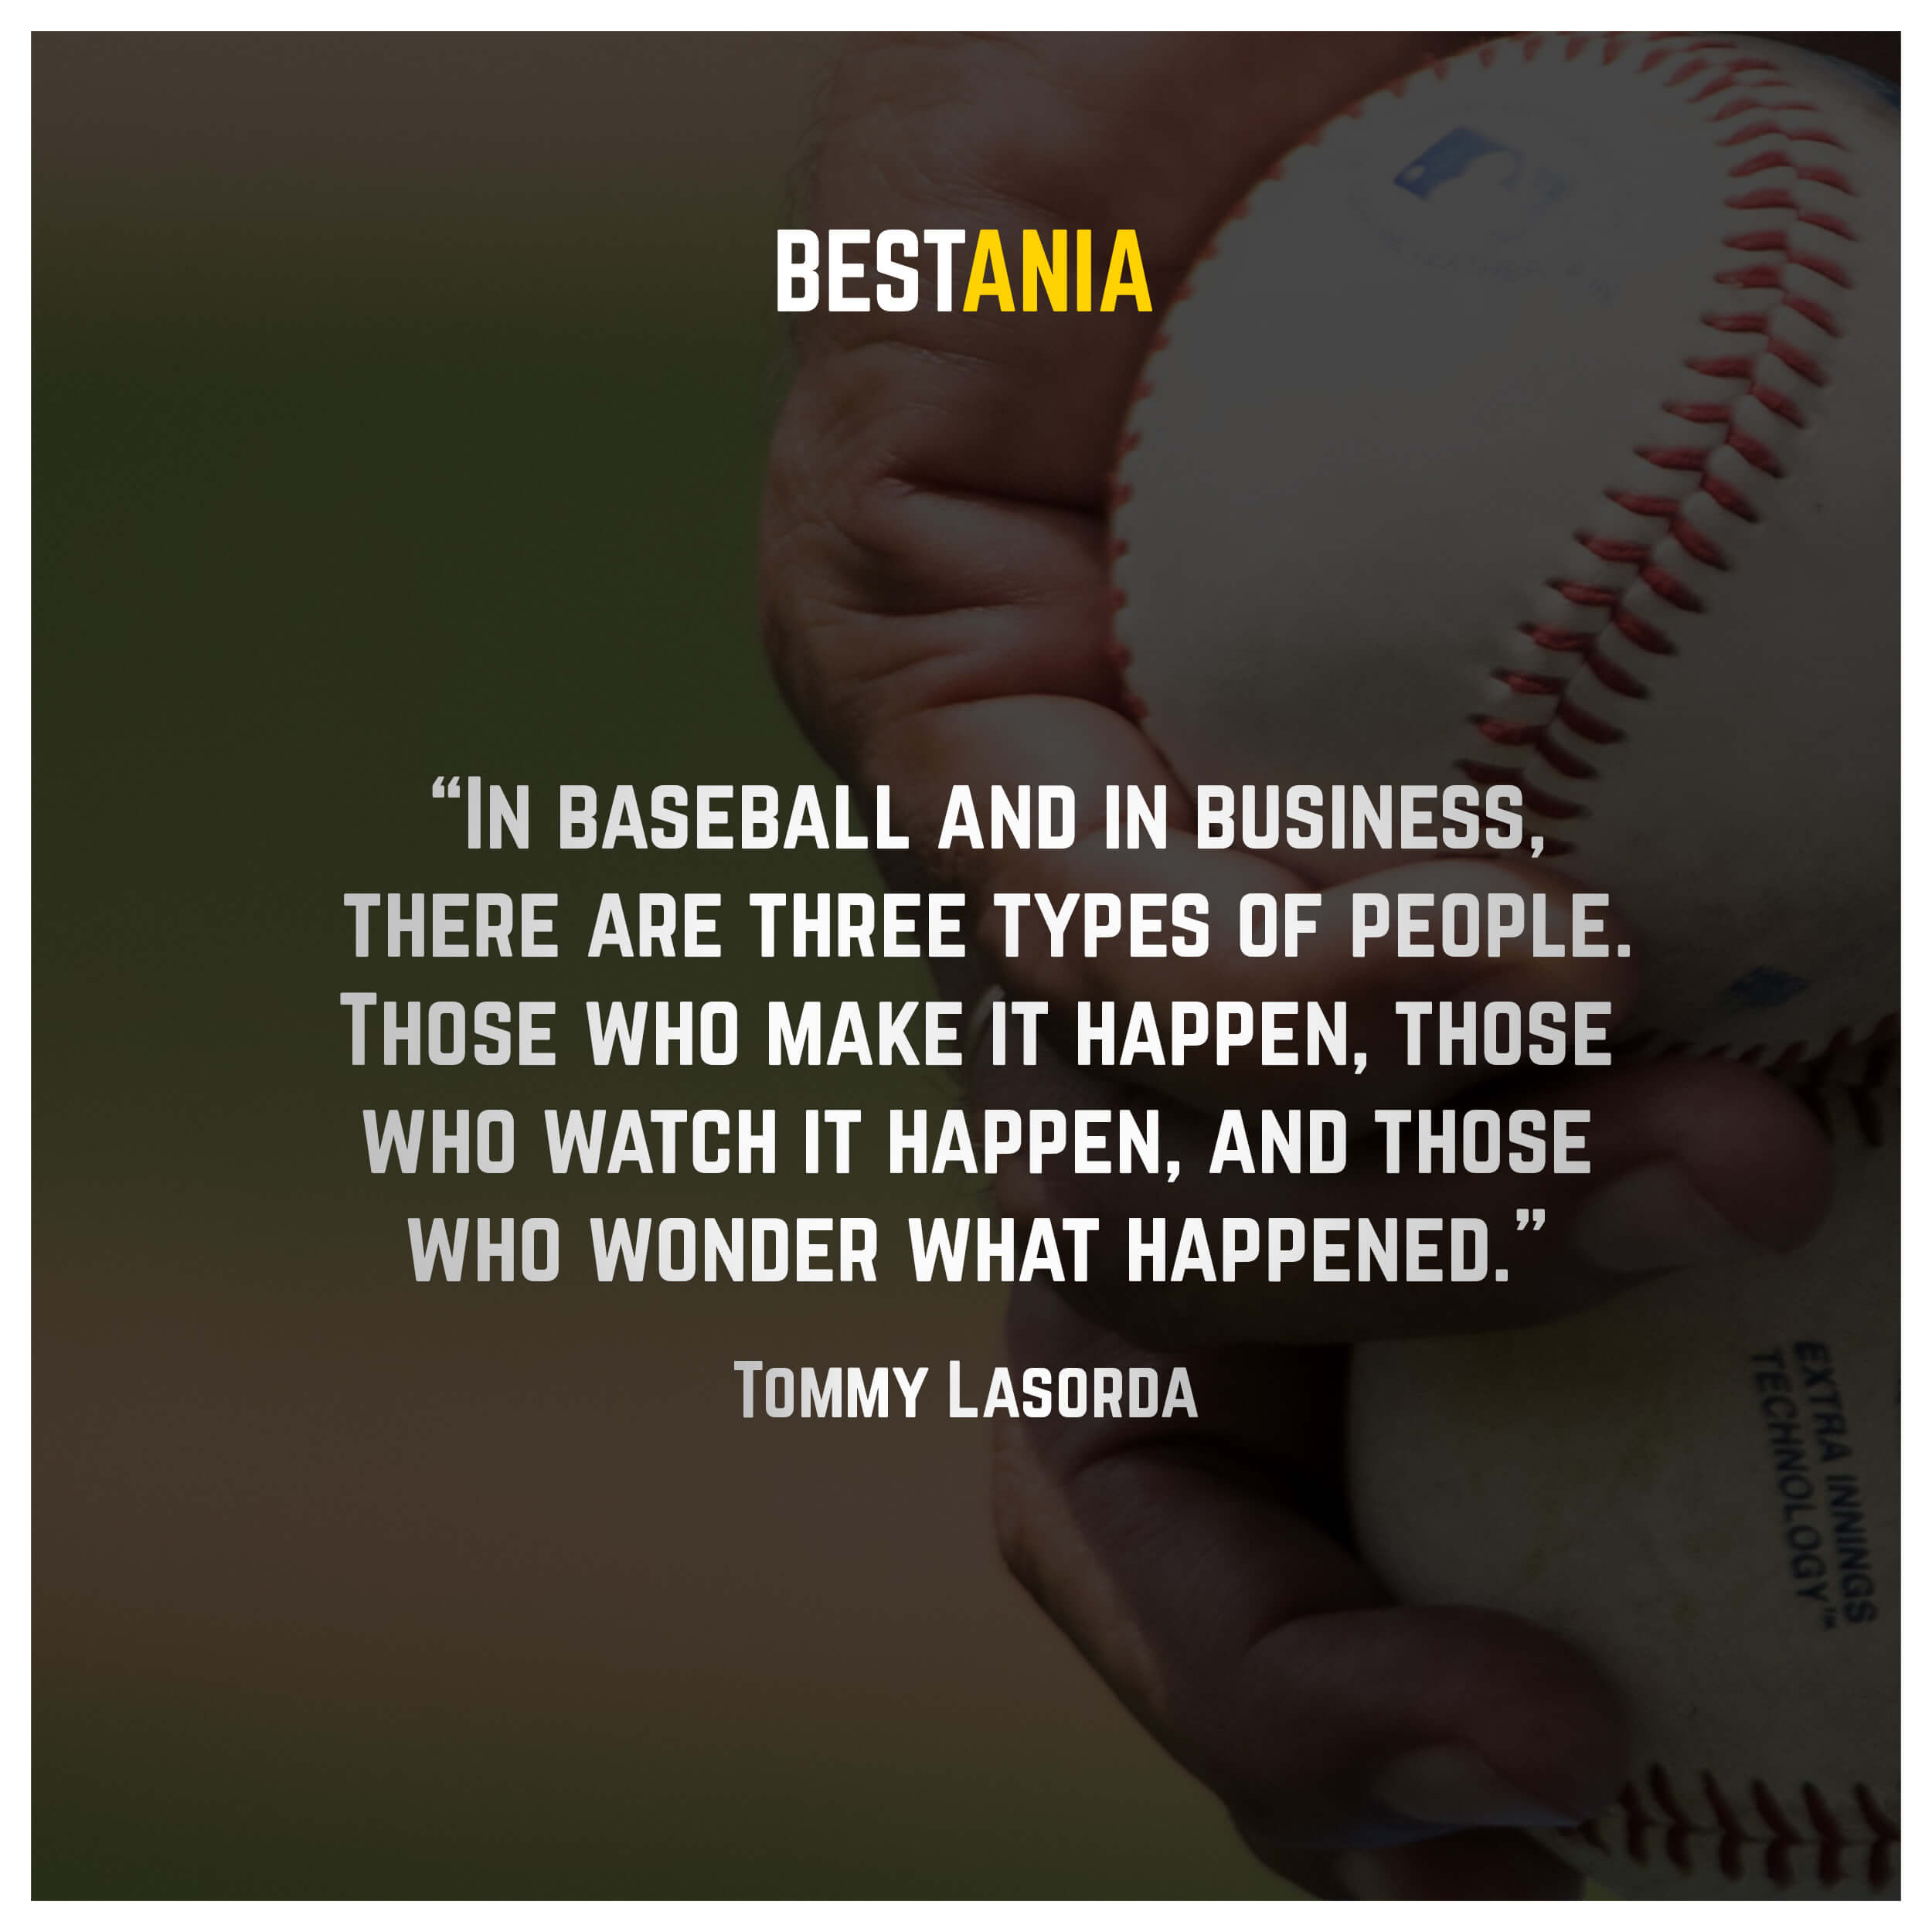 """""""In baseball and in business, there are three types of people. Those who make it happen, those who watch it happen, and those who wonder what happened."""" – Tommy Lasorda"""